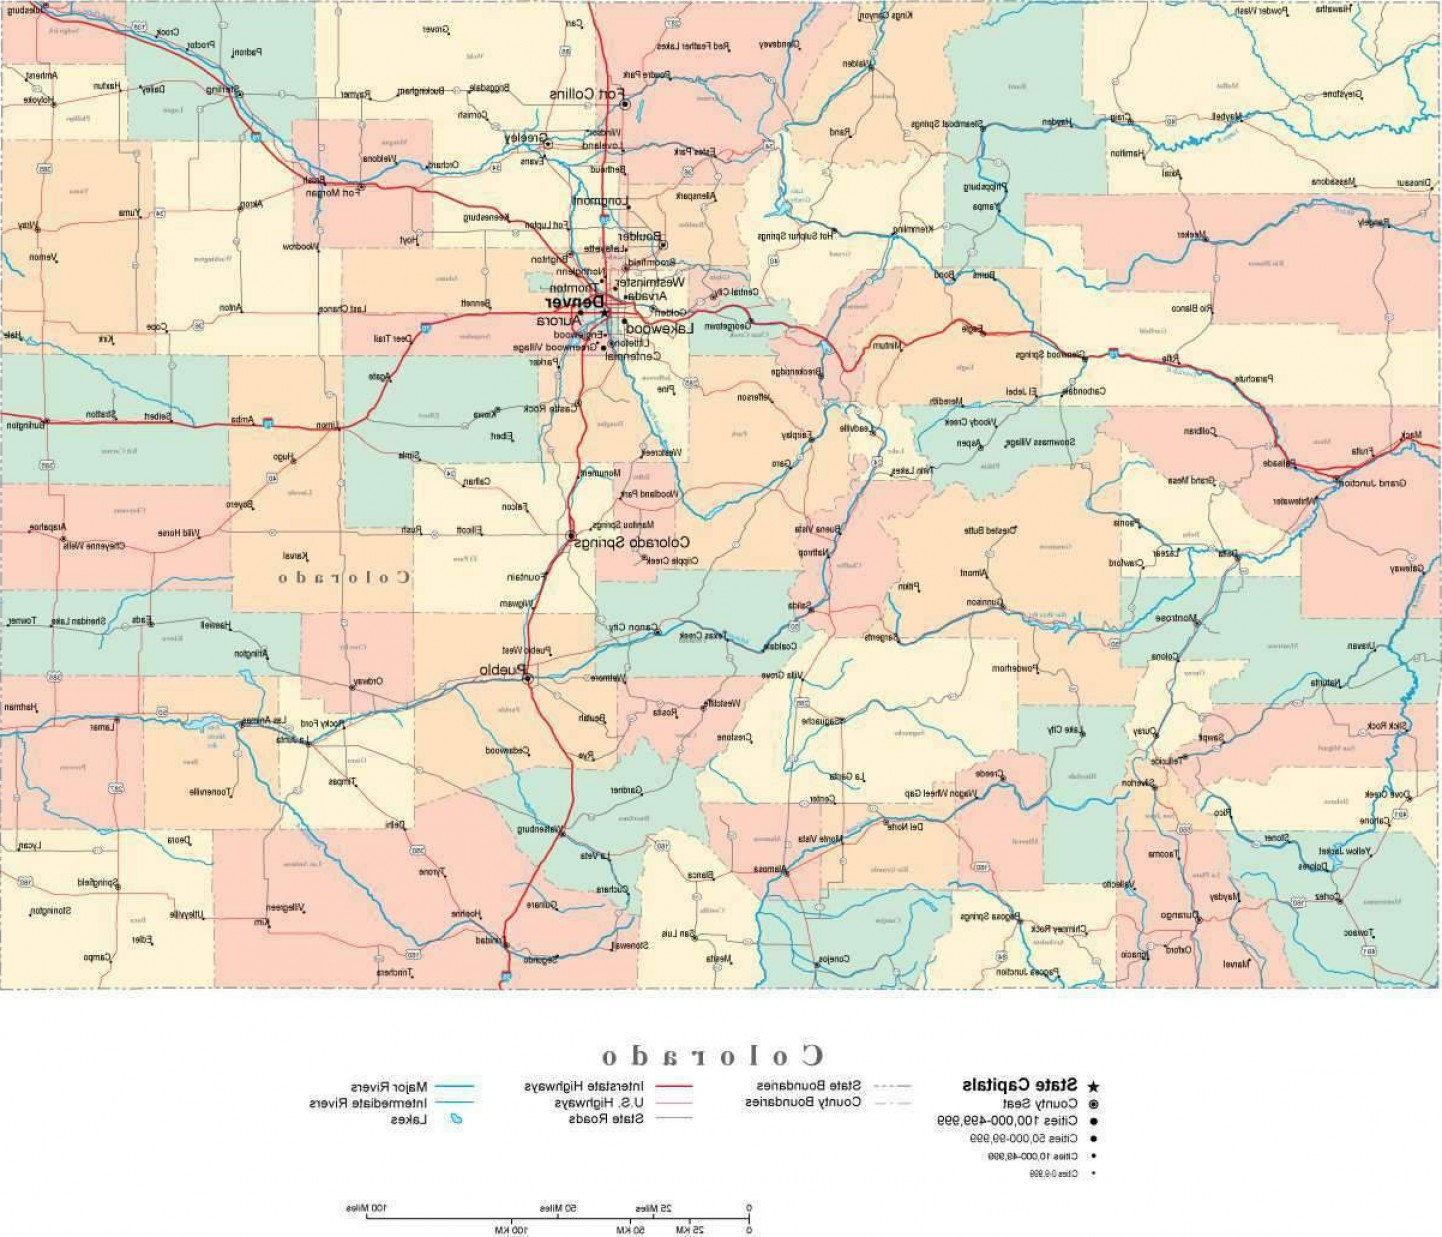 Colorado State Vector Maps: Colorado Digital Vector State Map Co Usa